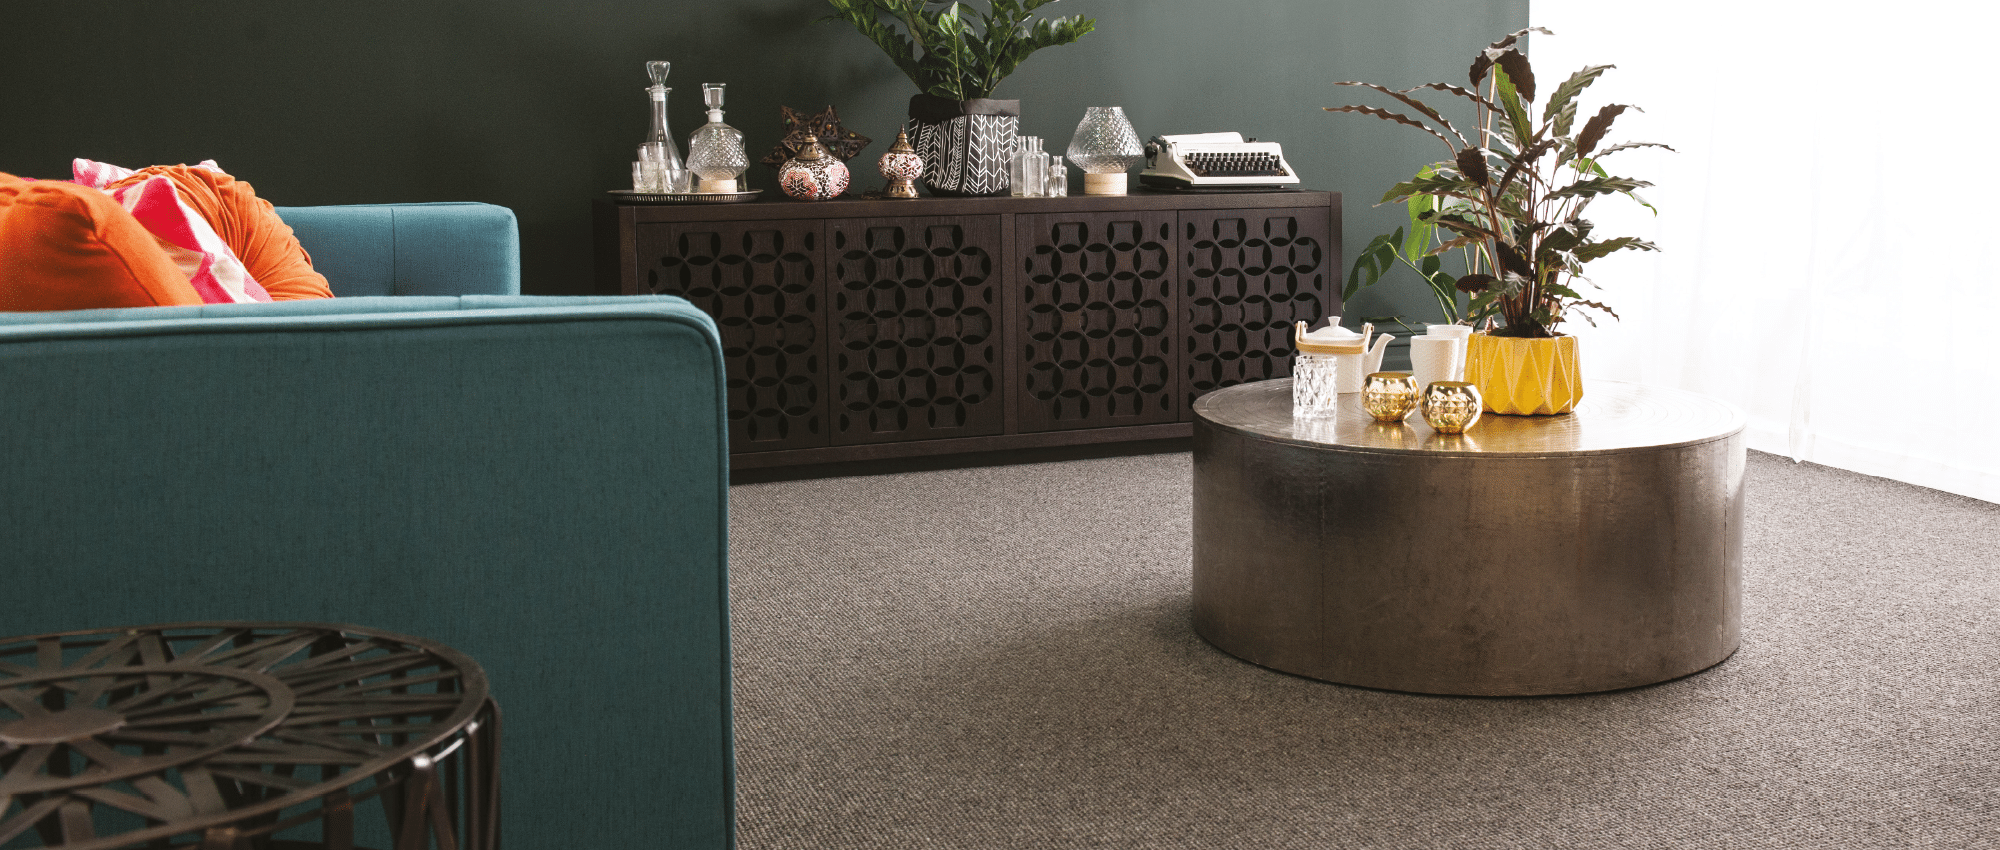 Wool, the best carpet choice for Allergy and Asthma sufferers